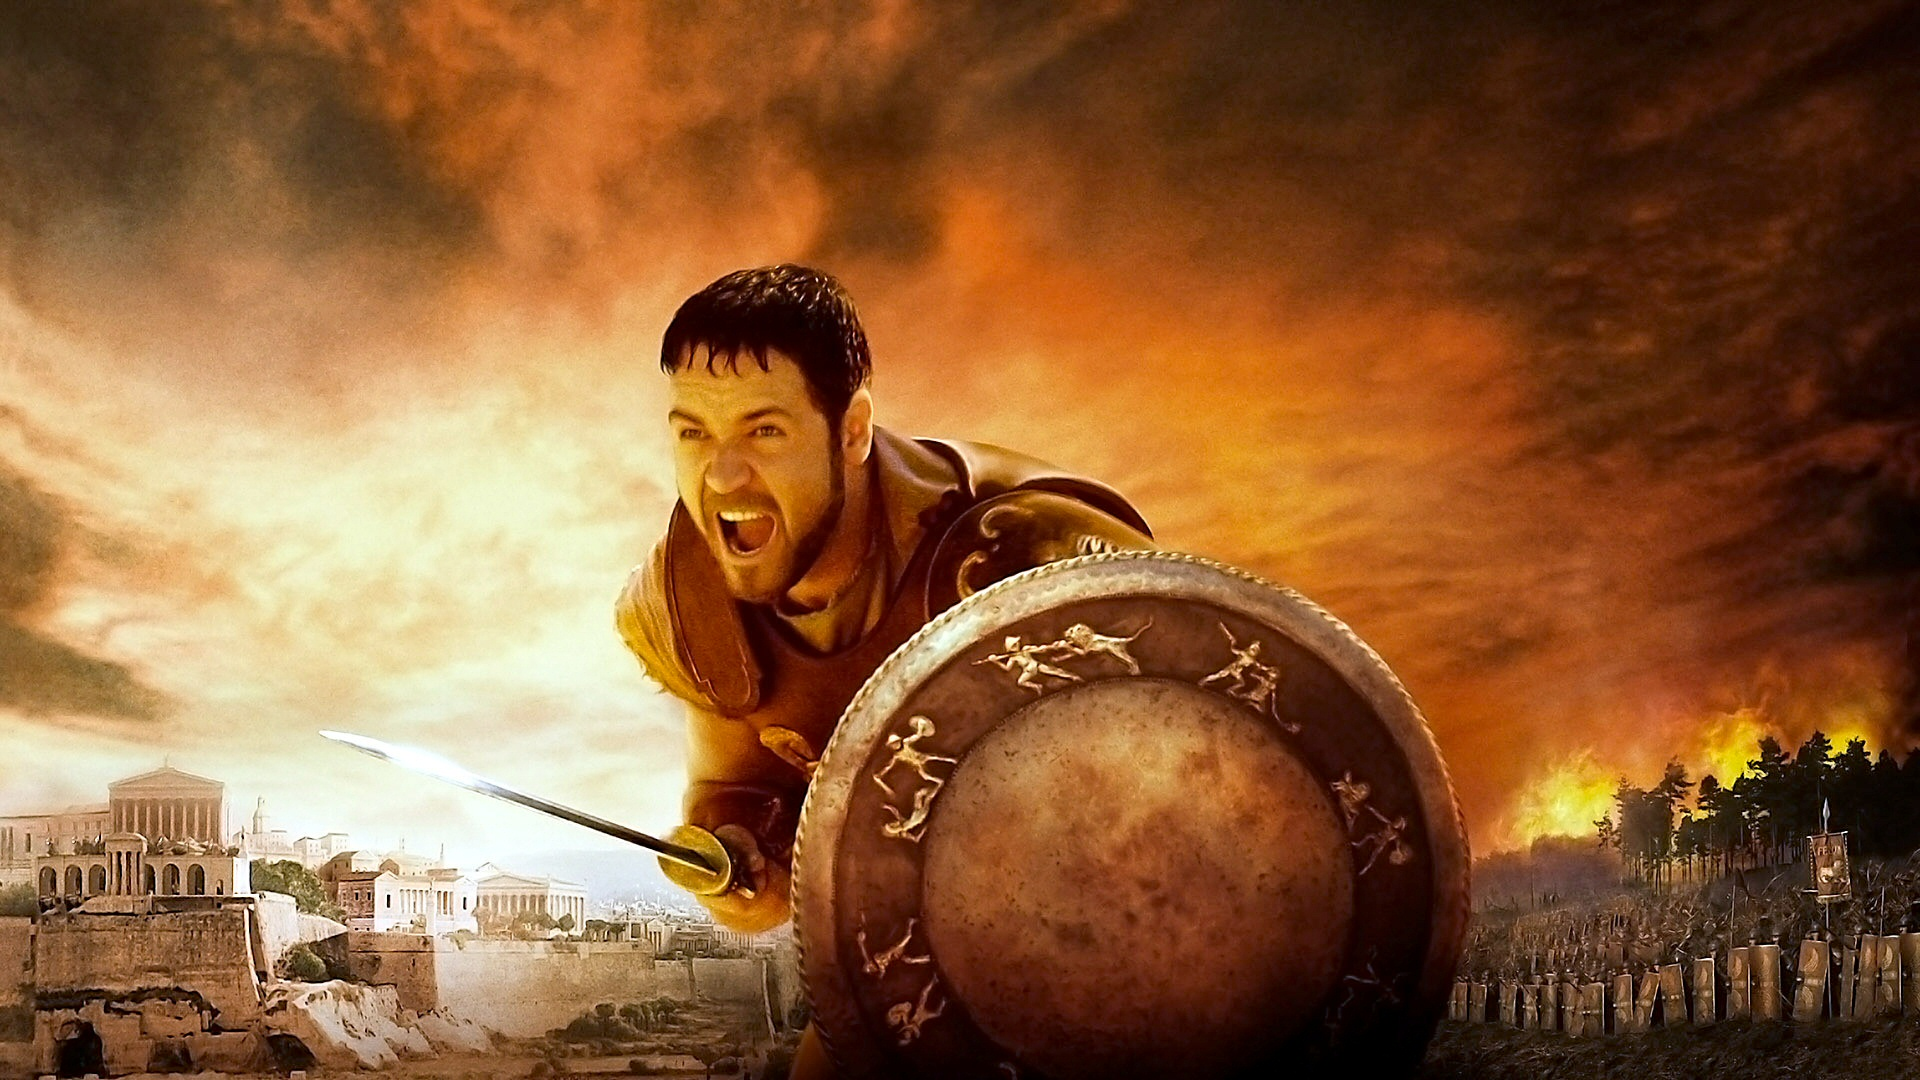 Gladiator Wallpapers Movie Wallpaper 1920x1080